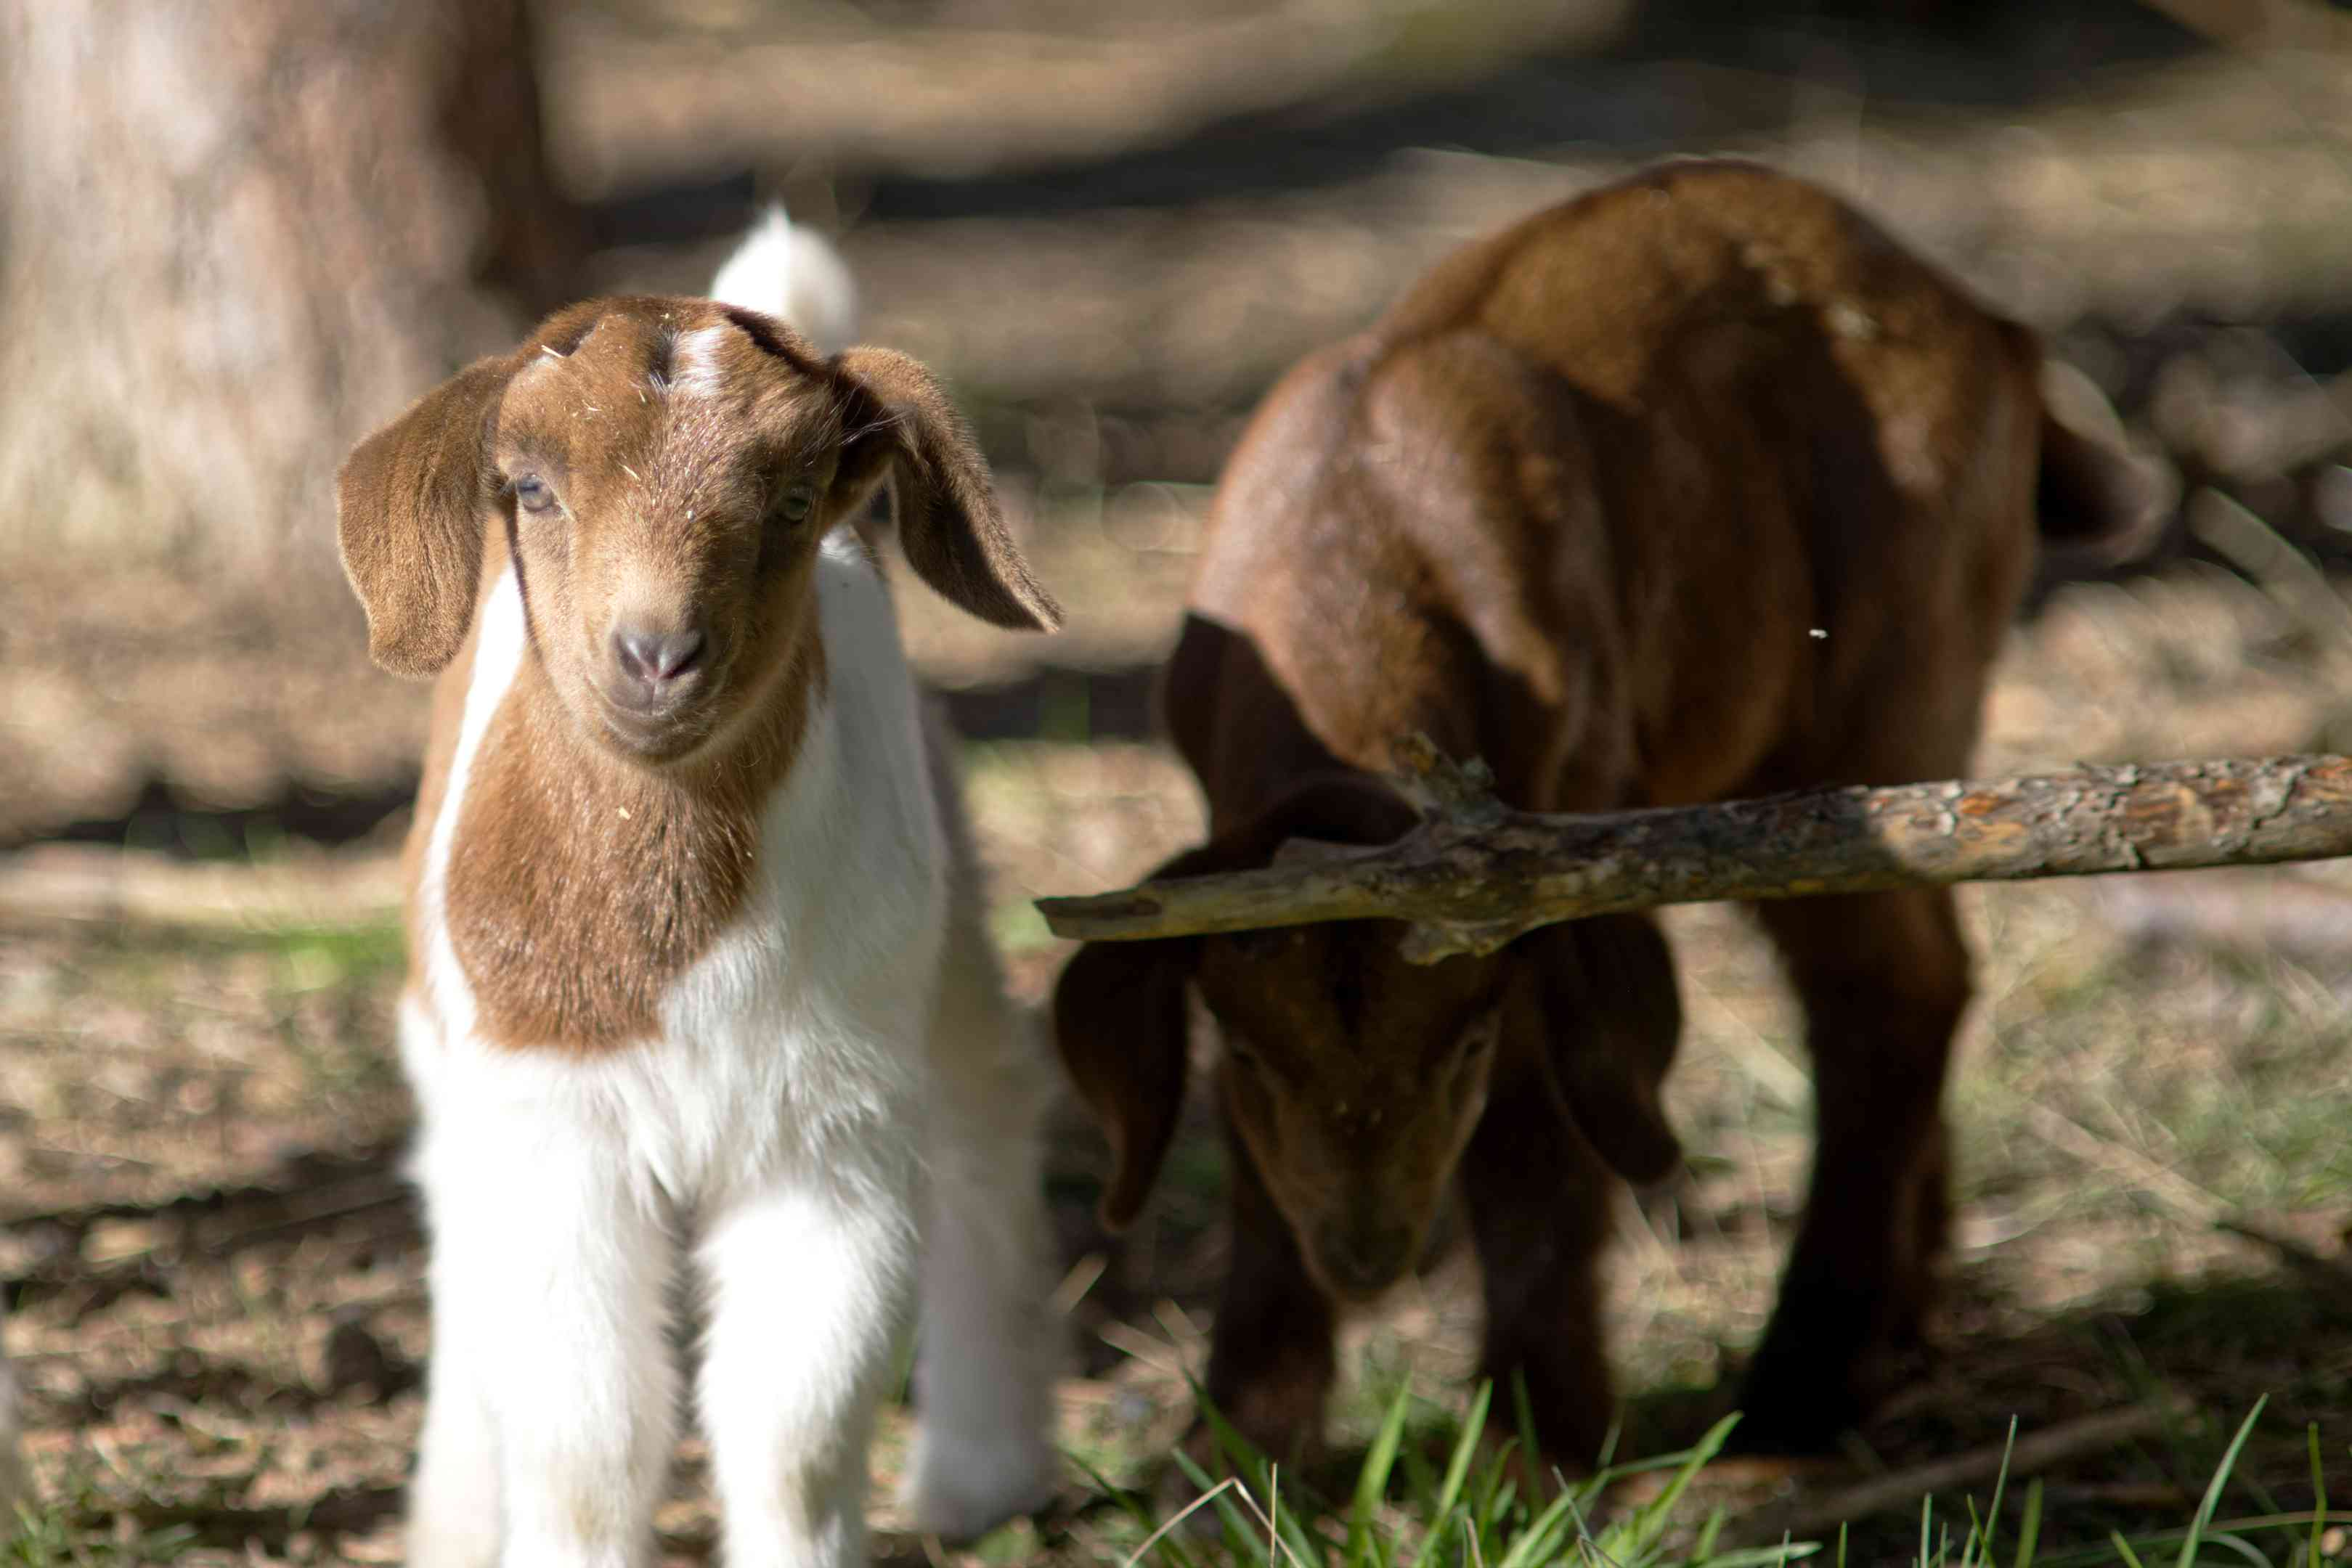 two baby goats outside in grass stare at camera